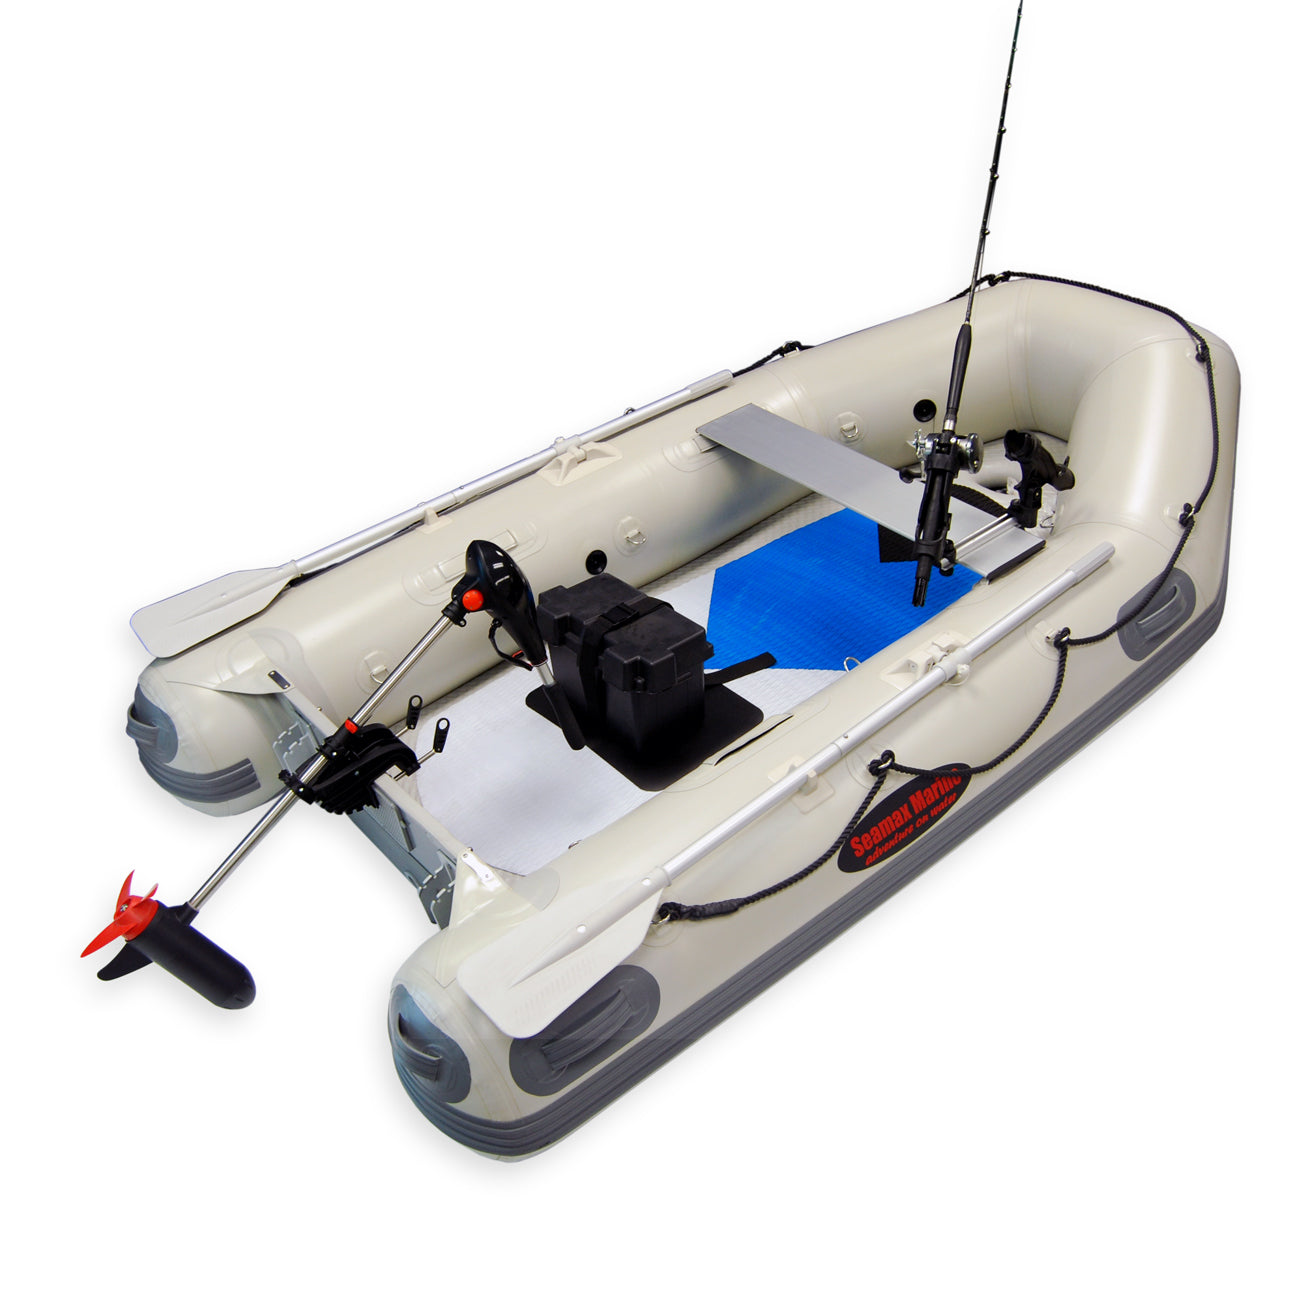 58LBS 12V Electric Trolling Motor Outboard Motor Inflatable Fish Boats Engine